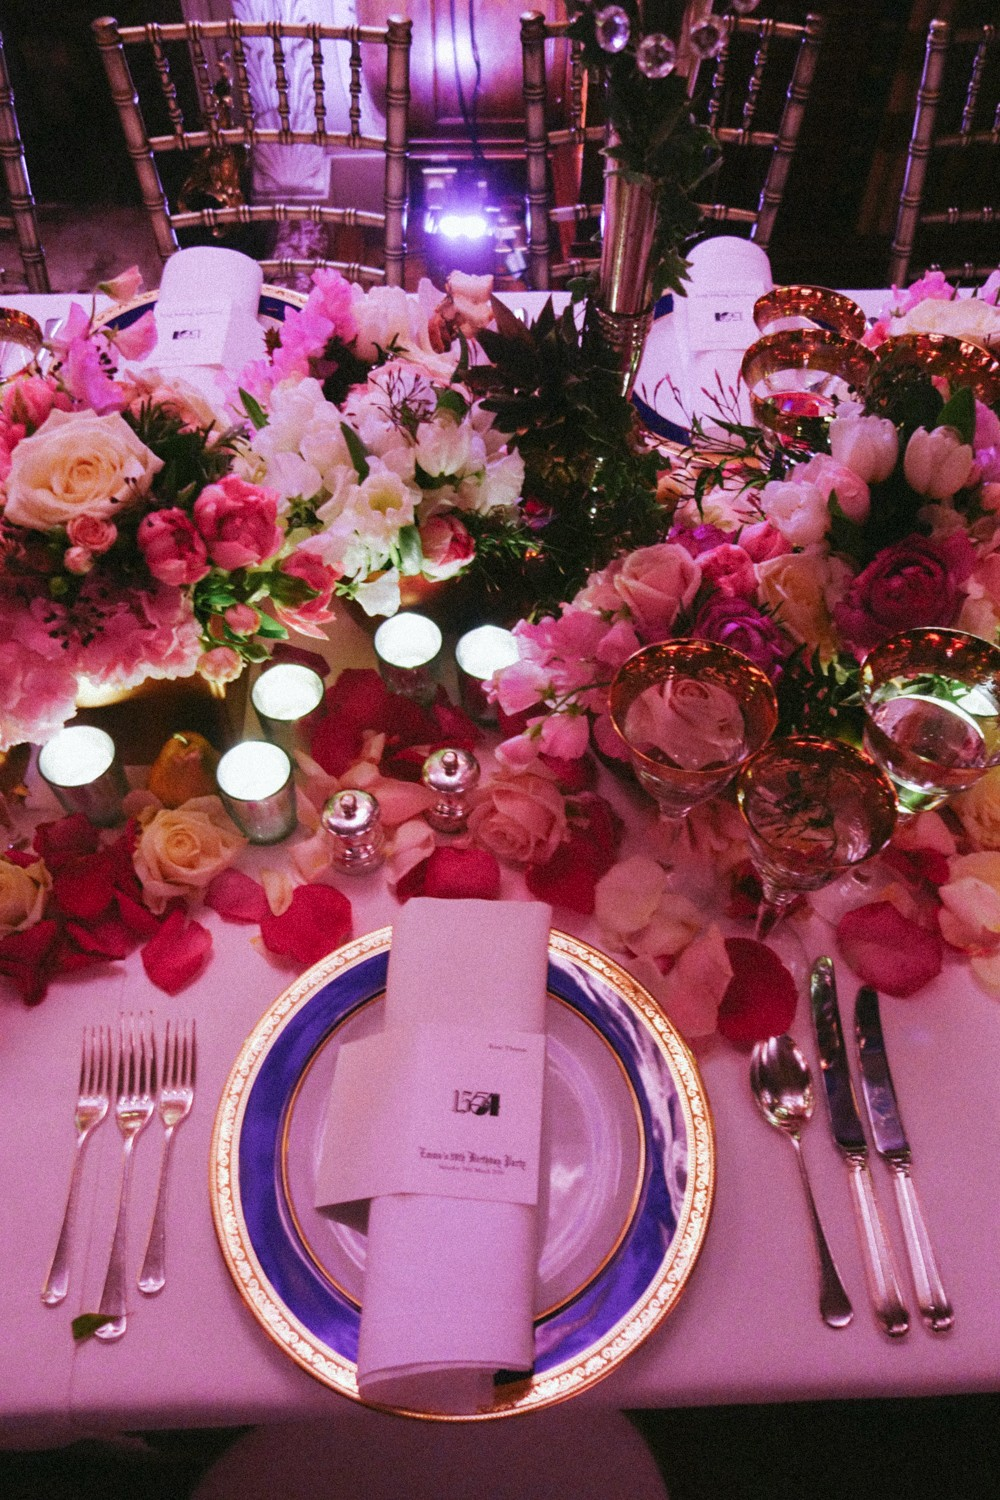 Rose covered table